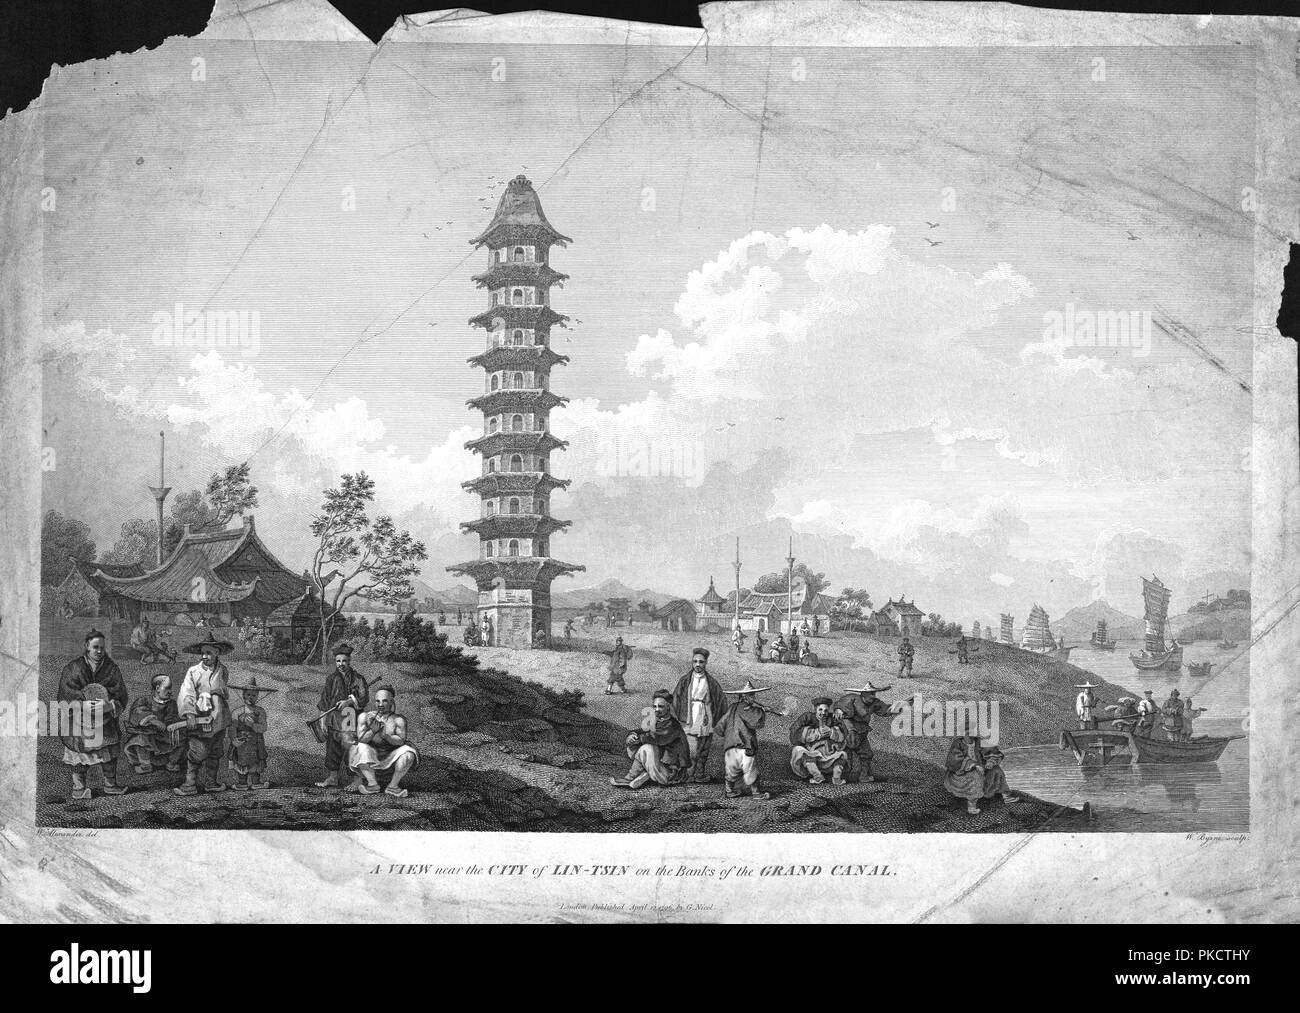 'A View near the City of Lin-Tsin on the Banks of the Grand Canal.', 1796. Artist William Alexander accompanied Lord Macartney on the Macartney Mission, the first British diplomatic mission to China, in 1793. Shown here is a the 'Pagoda of Linsing of 9 stories', which stood where the Eu-Ho River intersects with the Grand Canal, sketched from a junk. - Stock Image